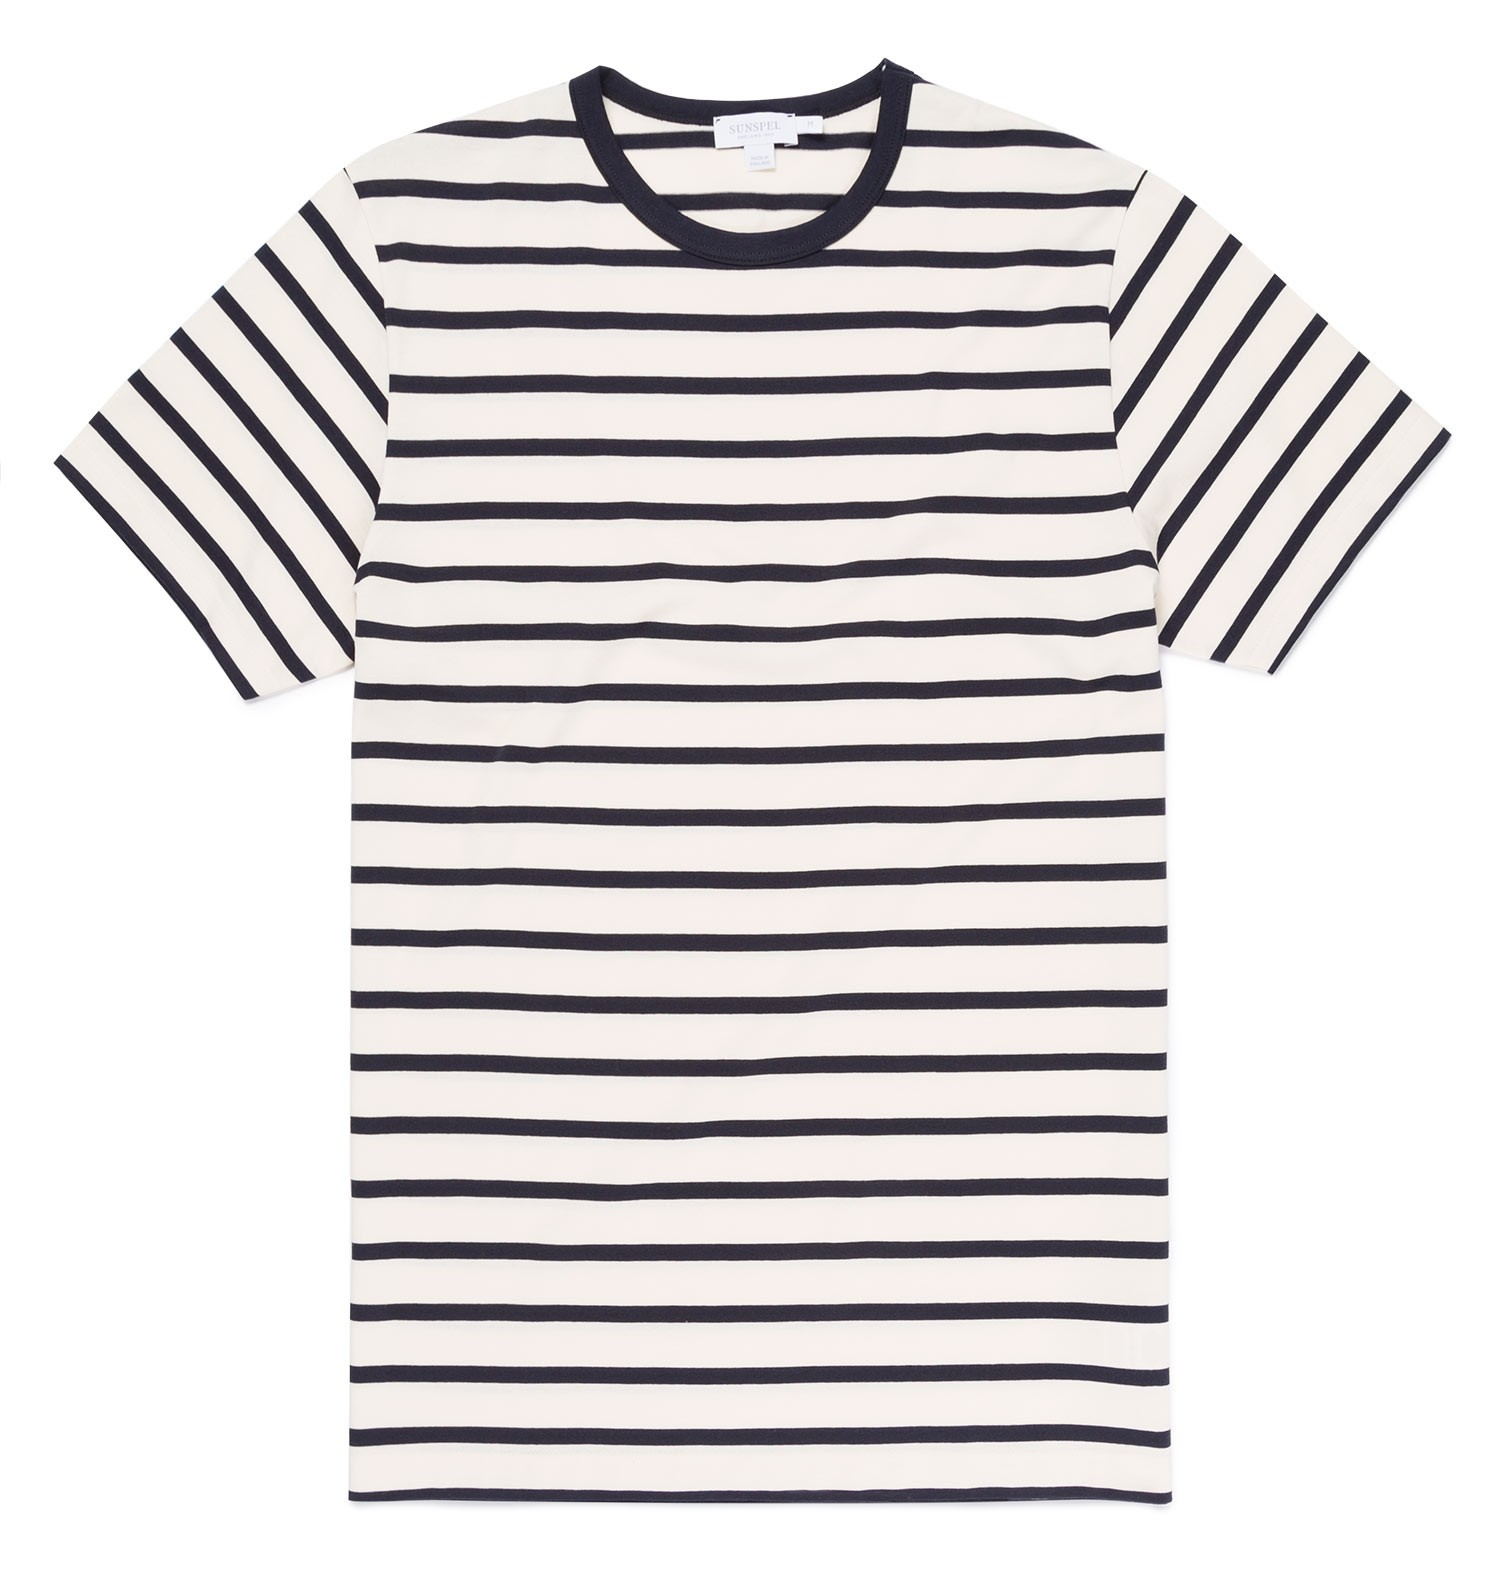 Sunspel Ecru/Navy Men's Classic Cotton Breton Stripe T-Shirt